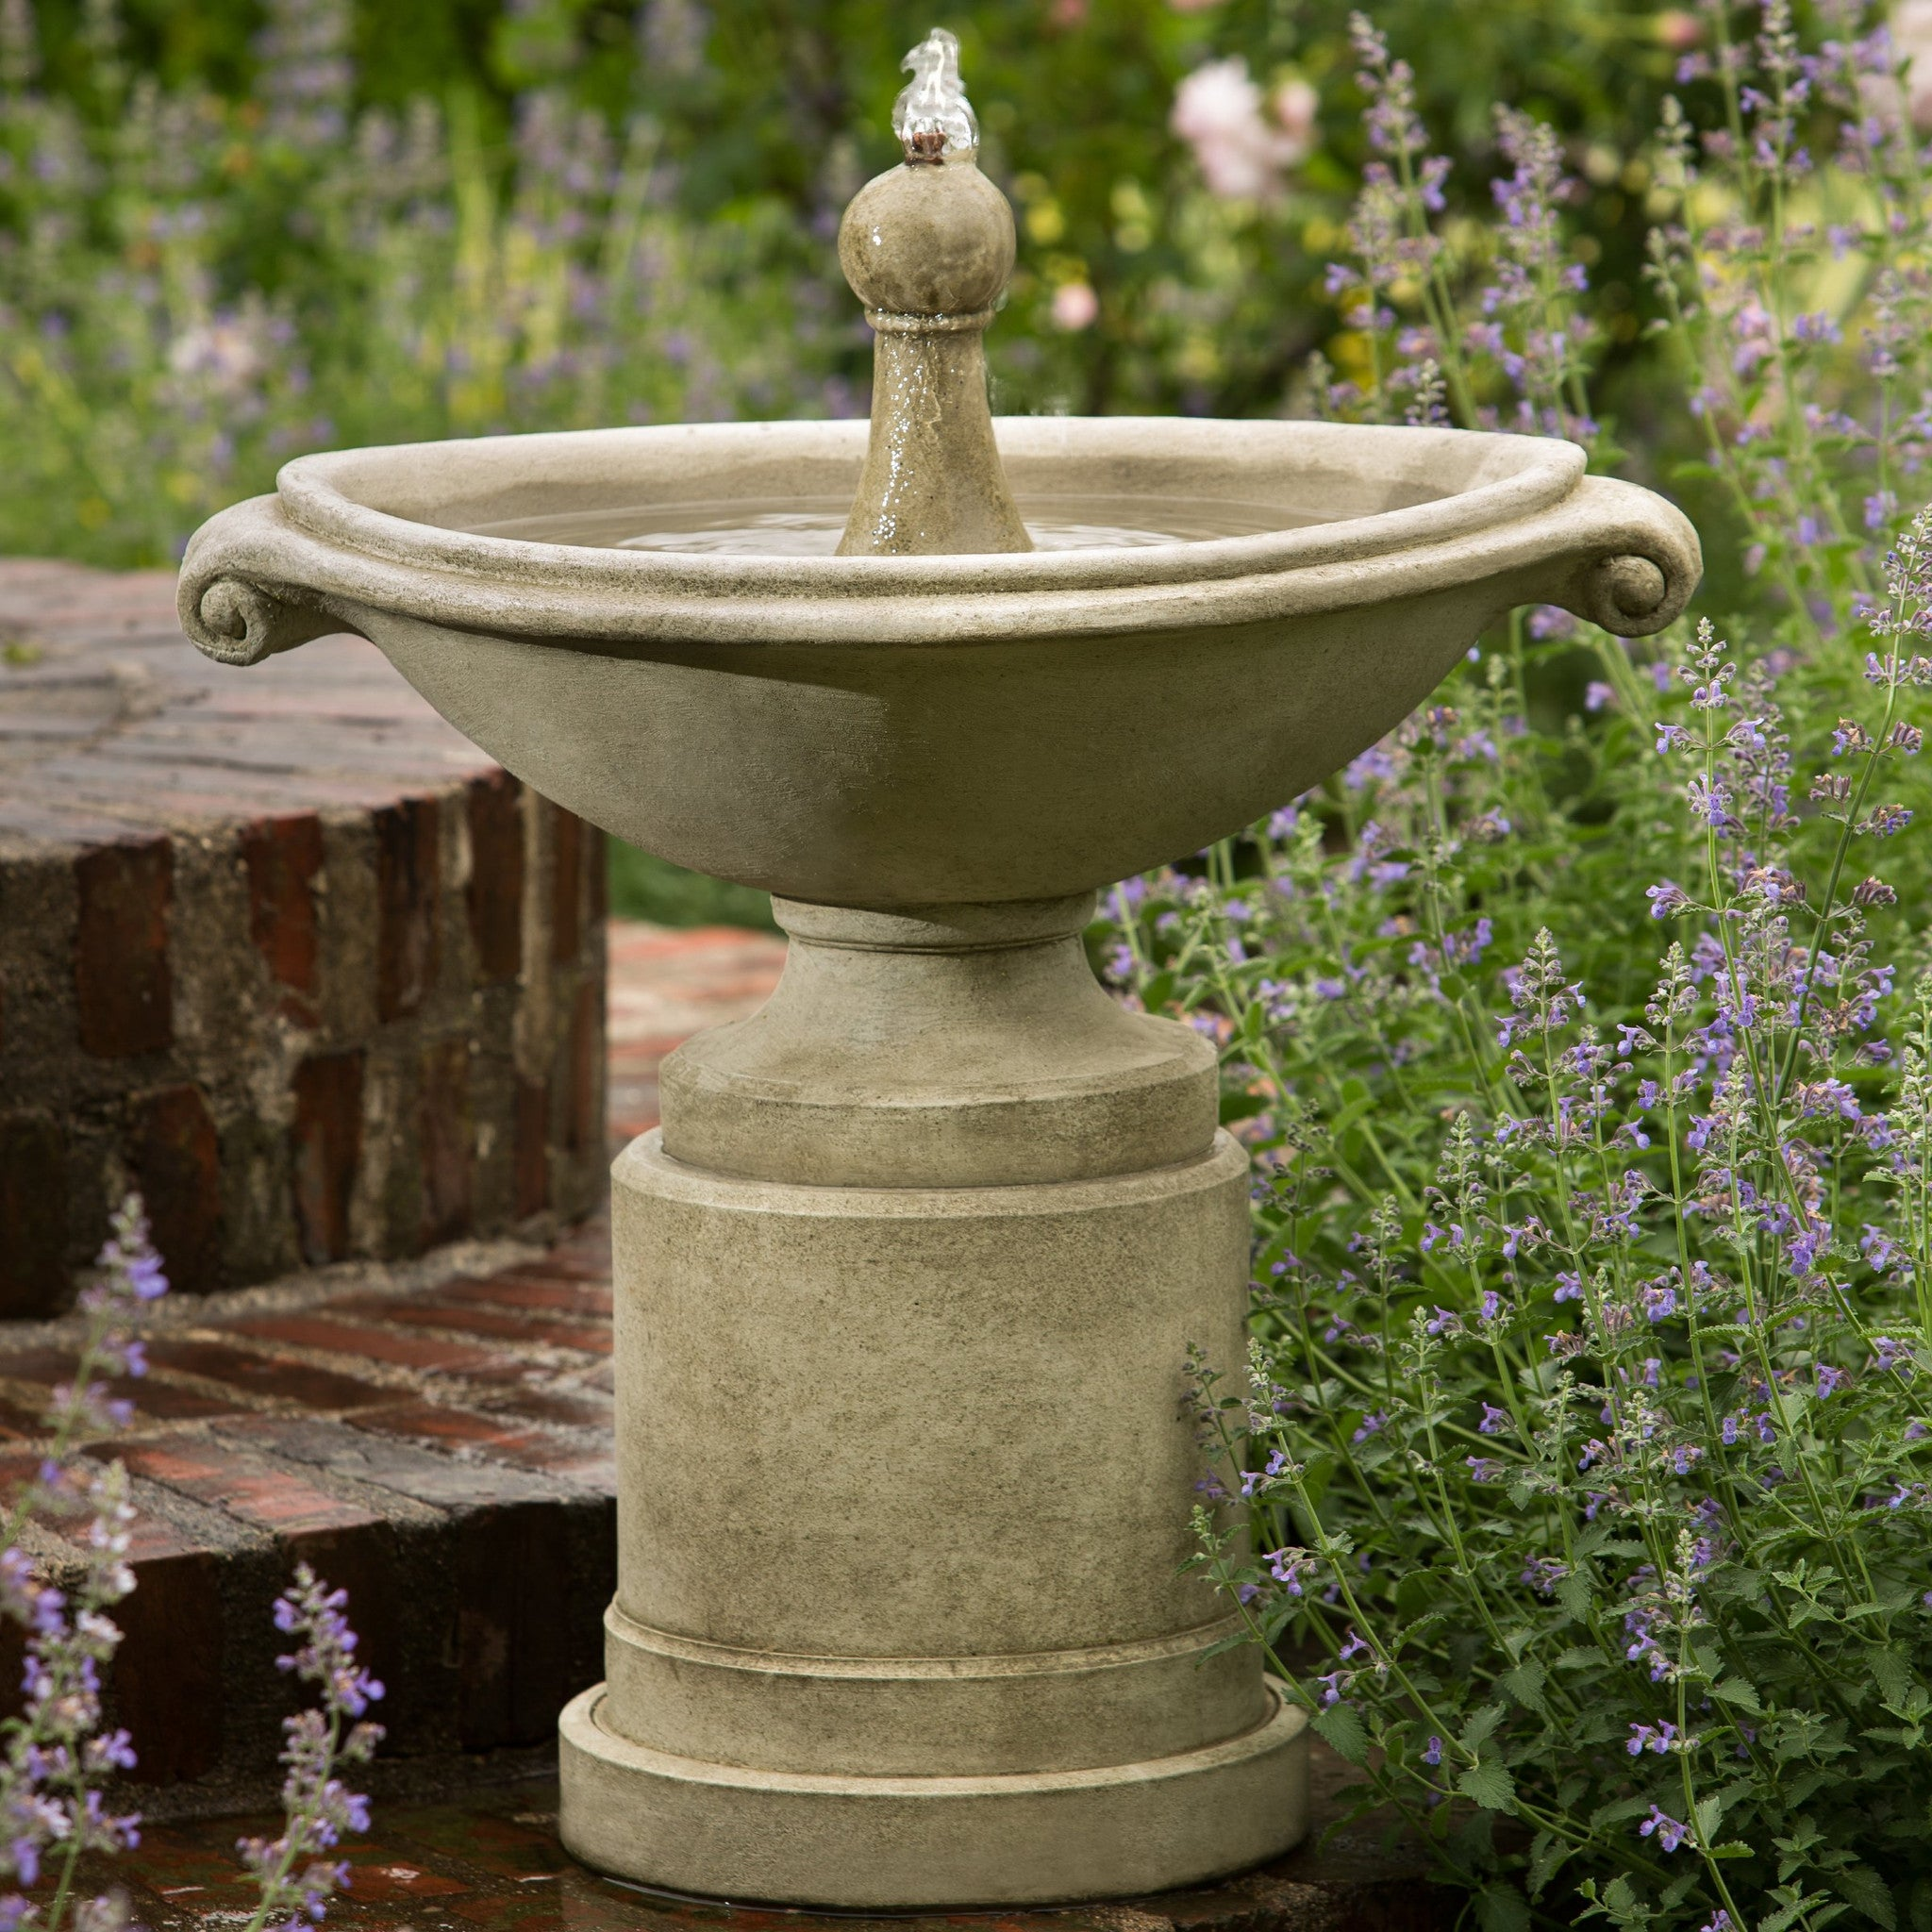 Borghese Outdoor Garden Fountain - SoothingWalls